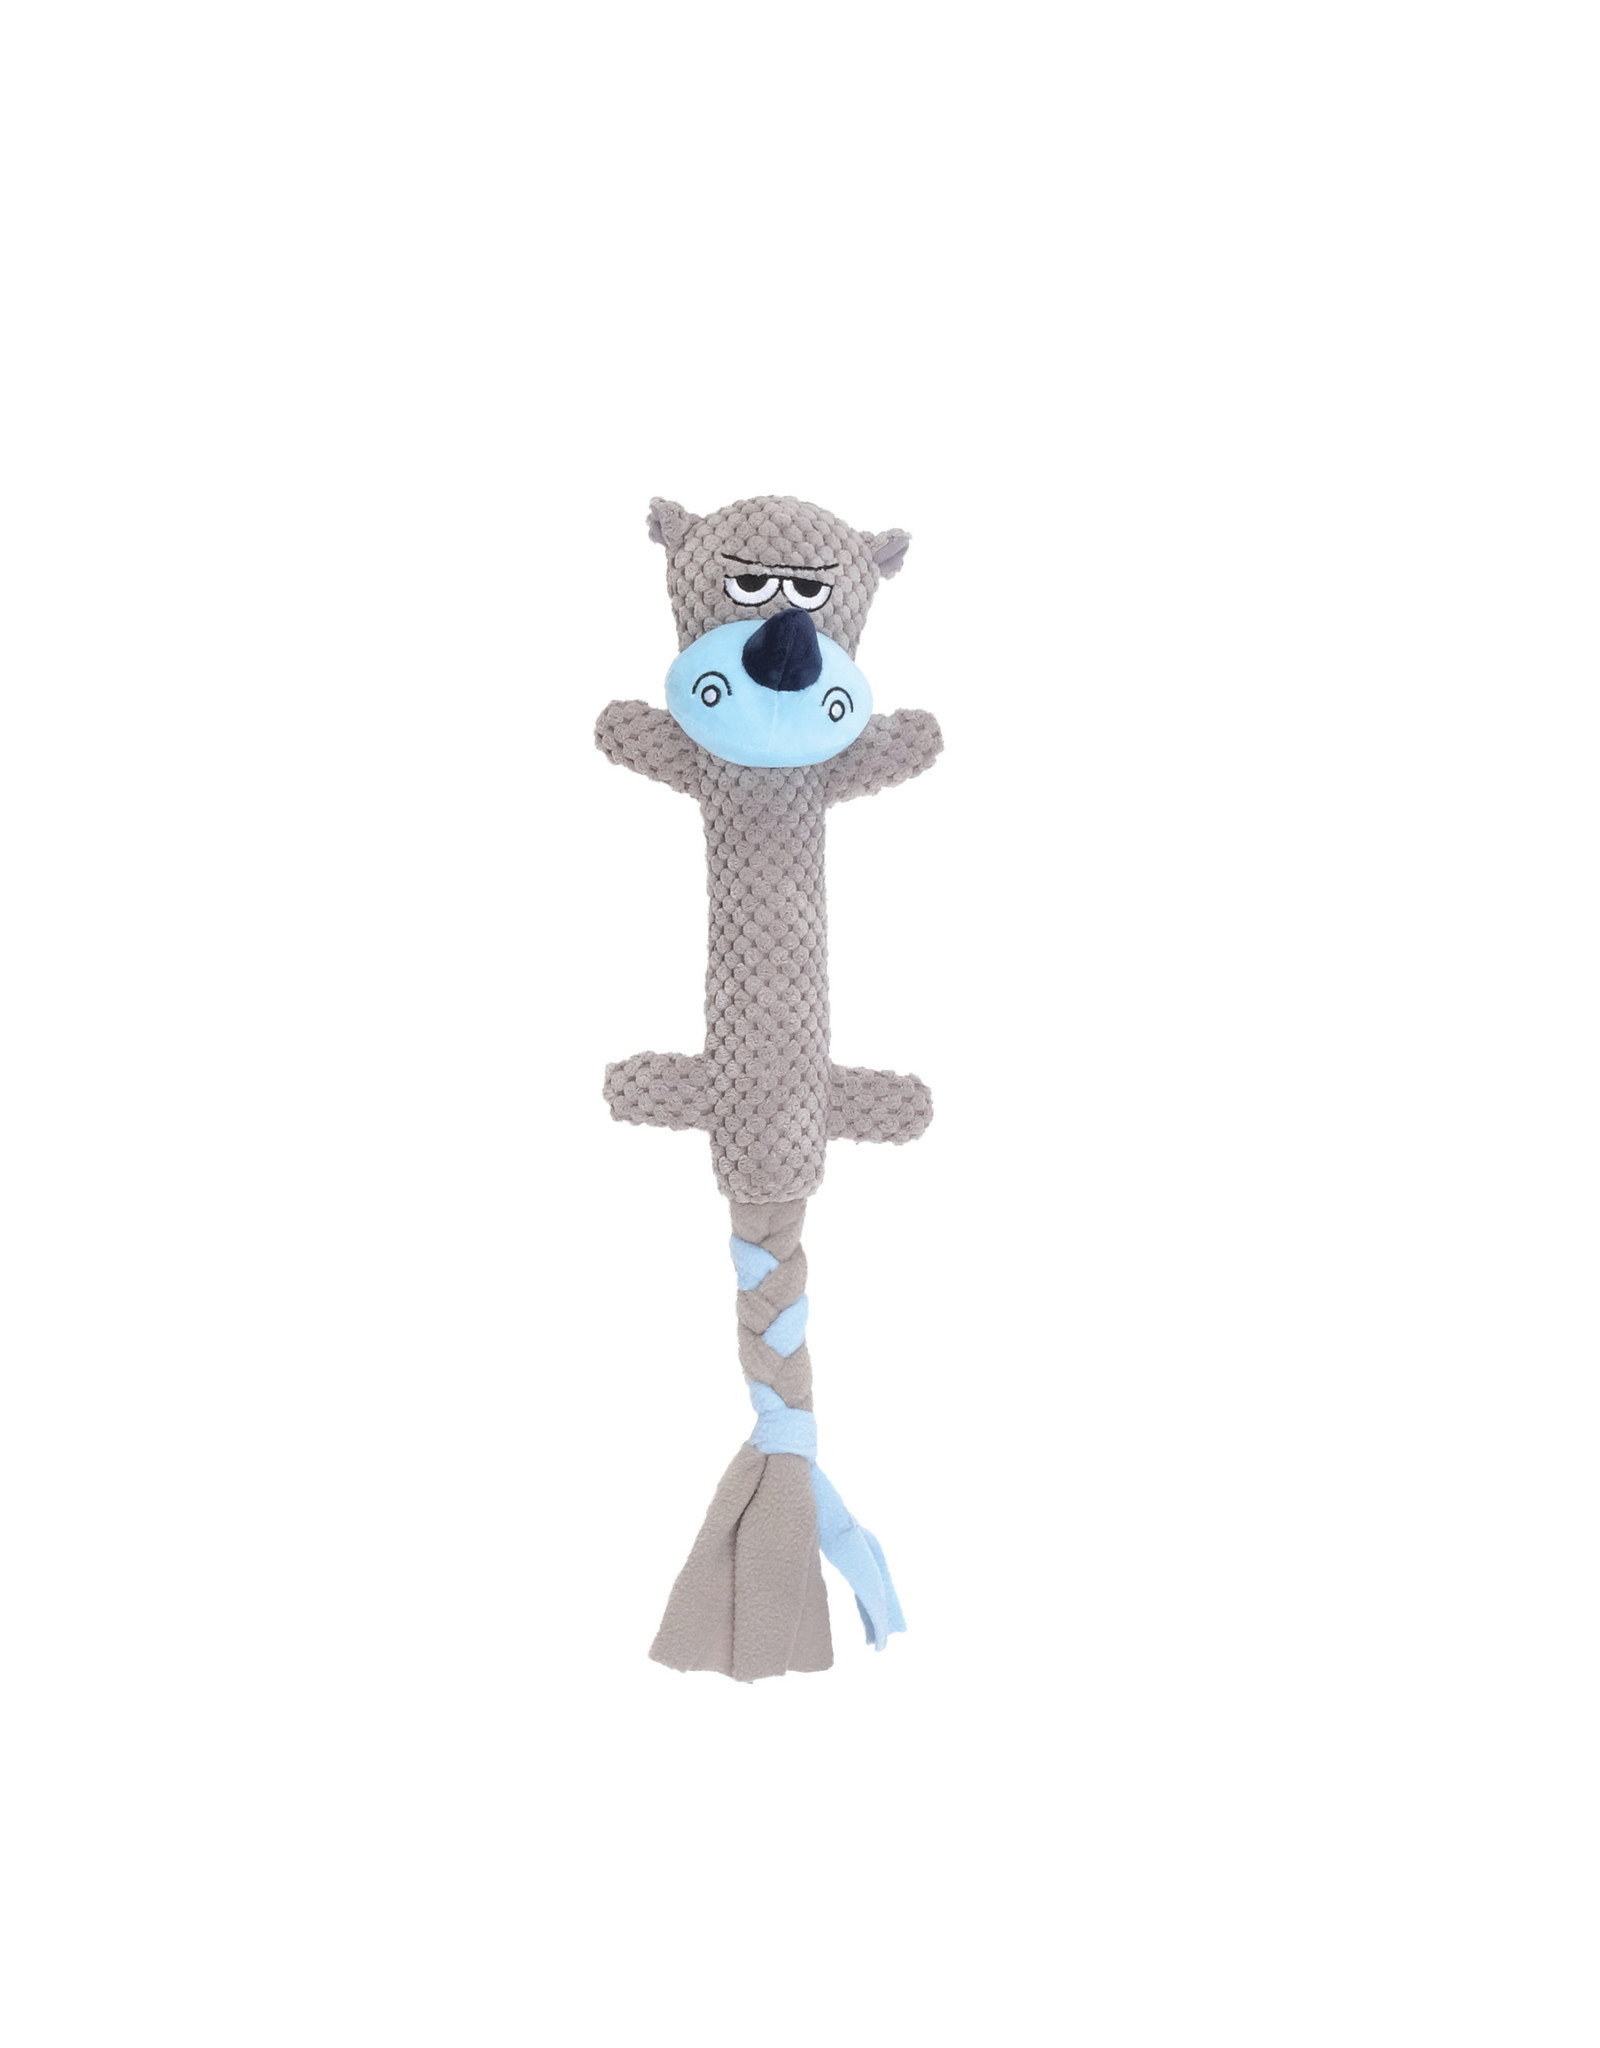 DO - Dogit Dogit Stuffies Dog Toy – Branch Friend - Rhino - 44 cm (17.5 in)